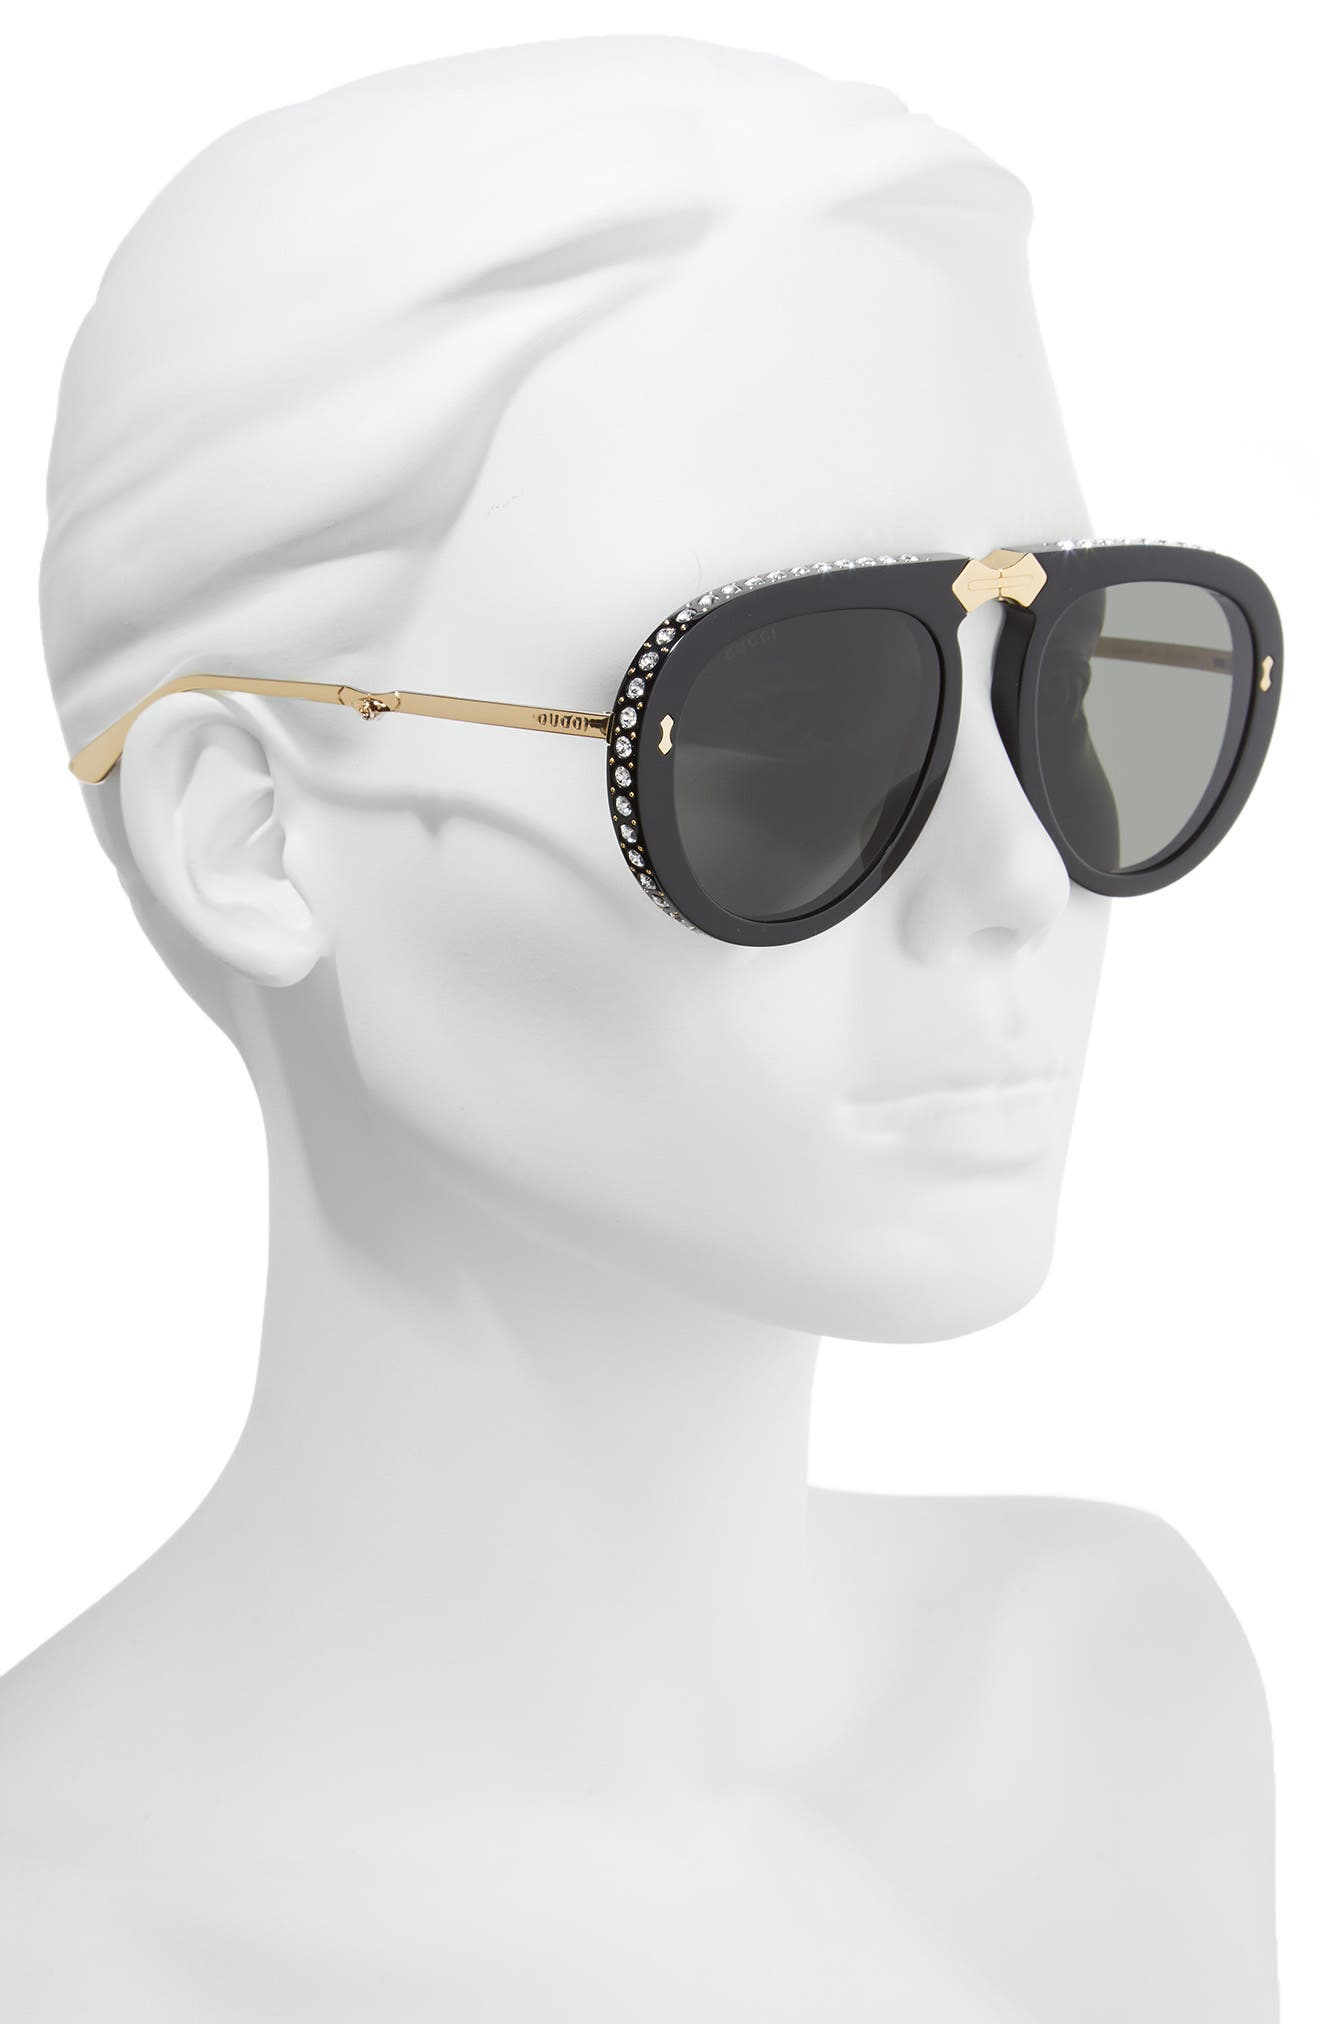 56mm Crystal Studded Aviator Sunglasses,                             Alternate thumbnail 2, color,                             BLACK/ GOLD/ GREY